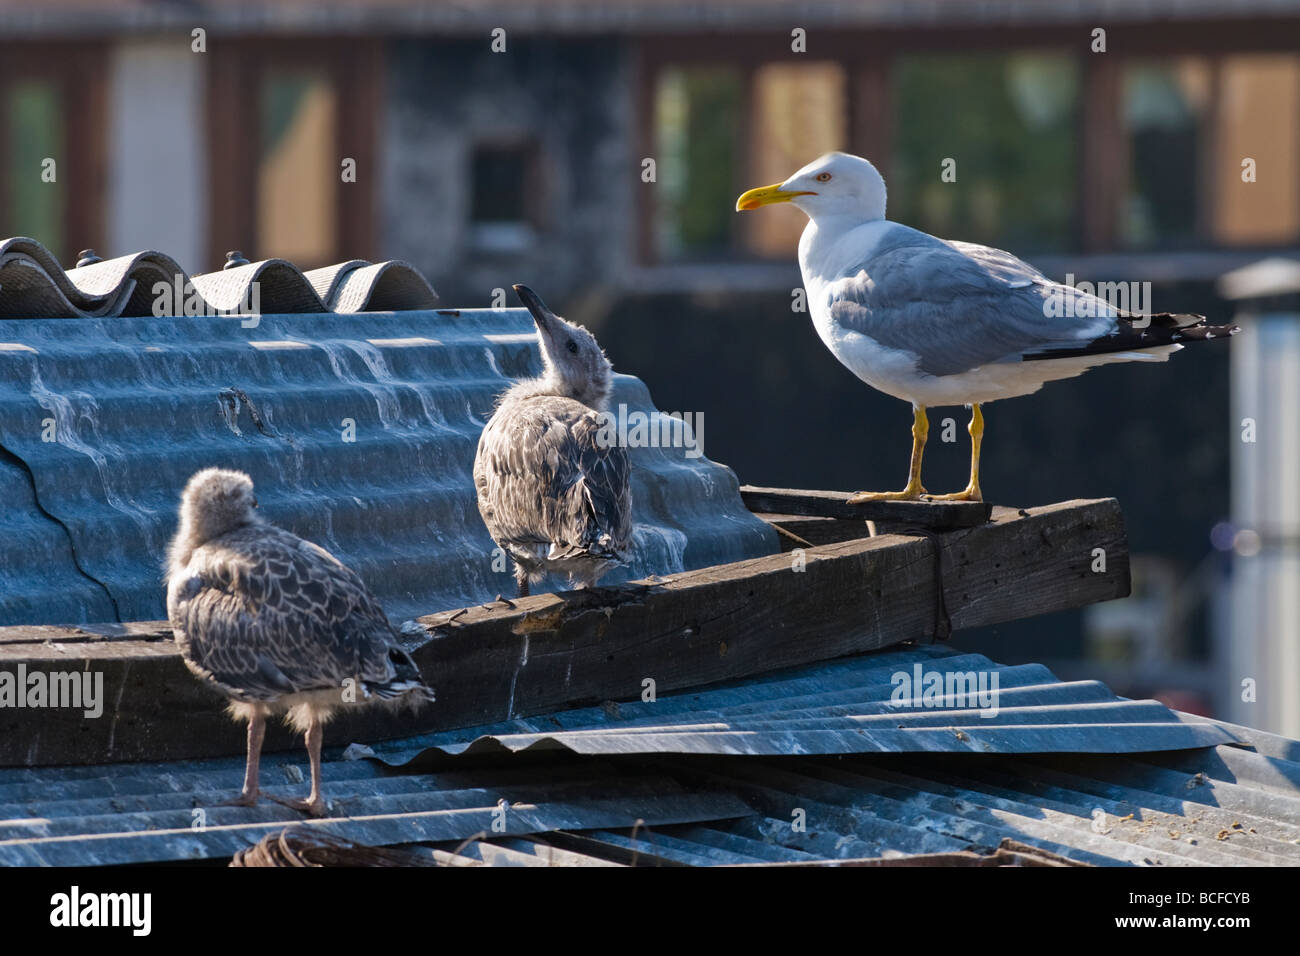 Turkey , Istanbul , seagull guards its young chicks or fledgling on rooftop perch by nest - Stock Image